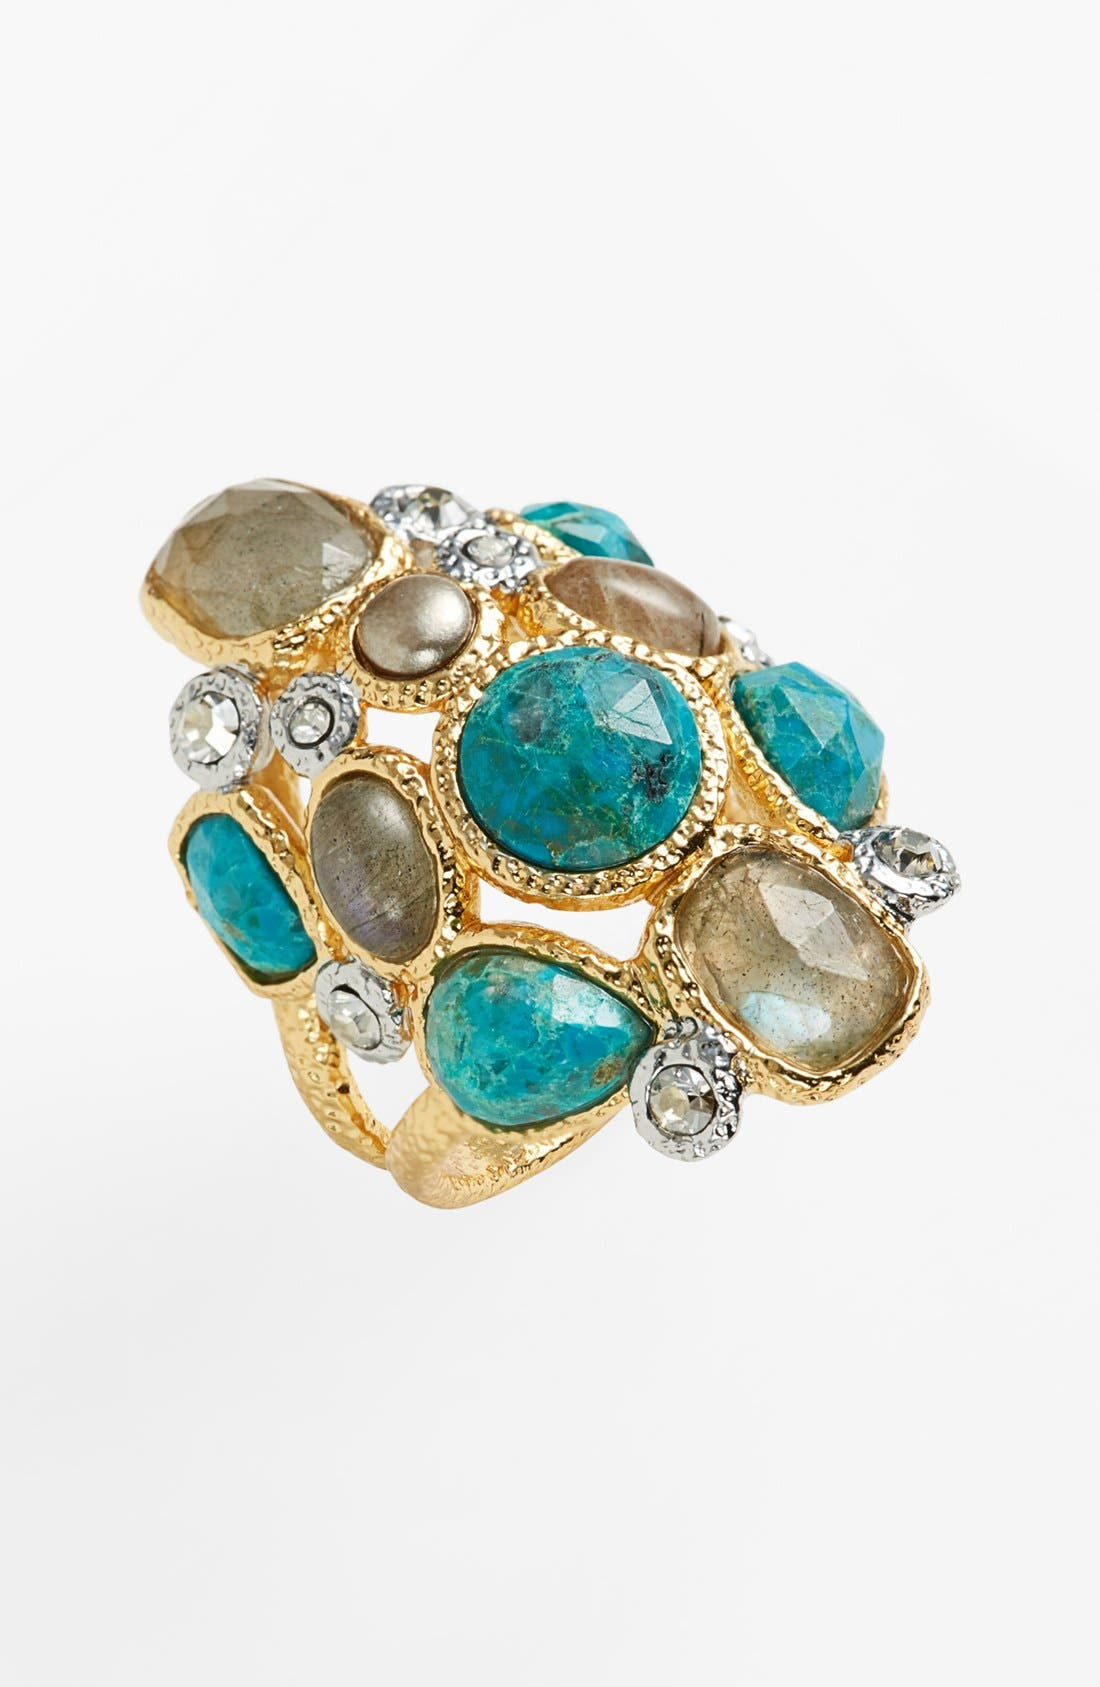 Main Image - Alexis Bittar 'Elements - Kiwi' Cluster Ring